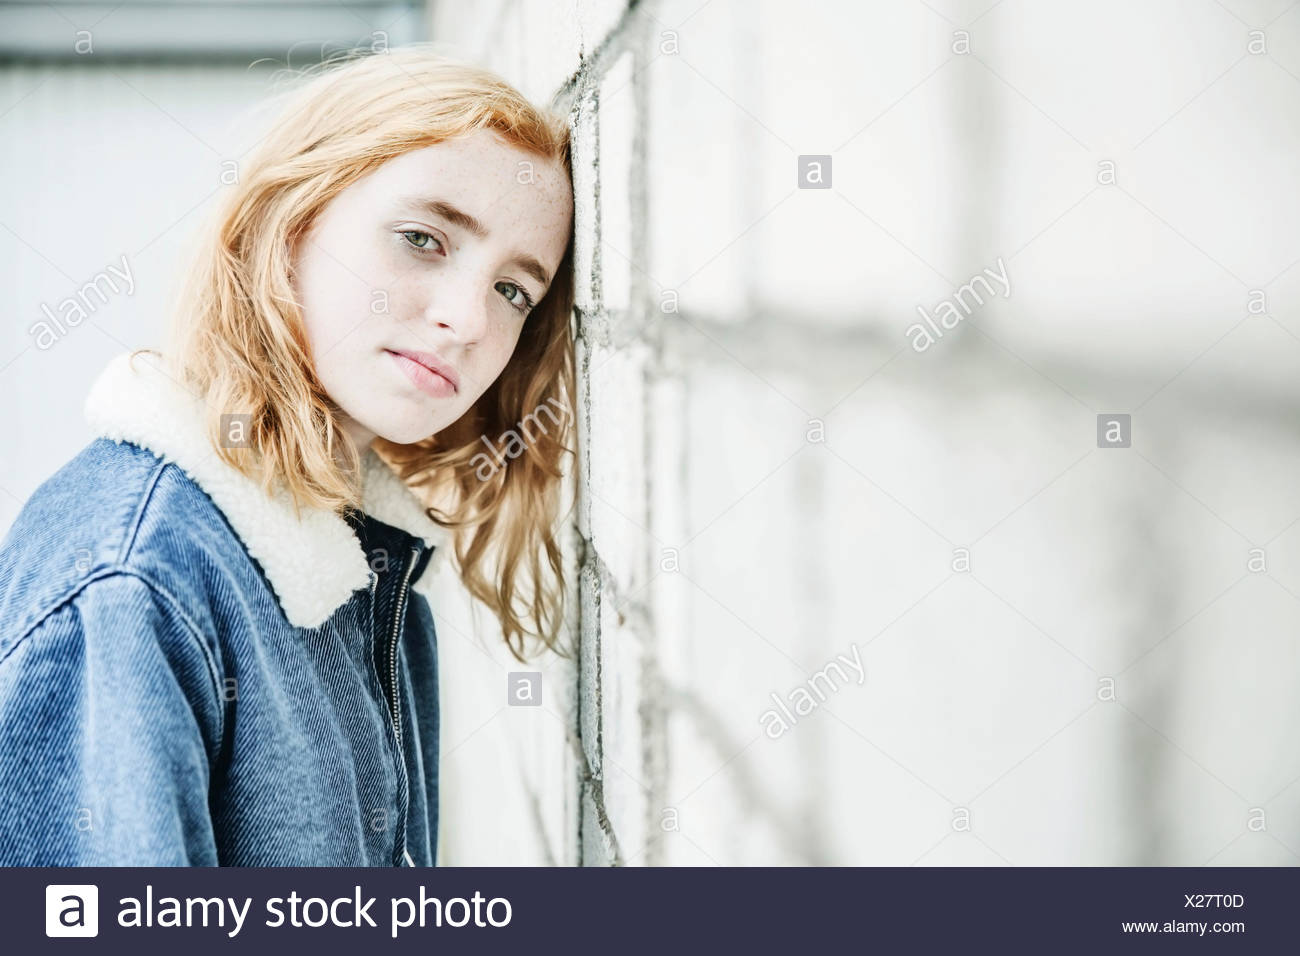 Portrait of girl leaning her head against a wall - Stock Image